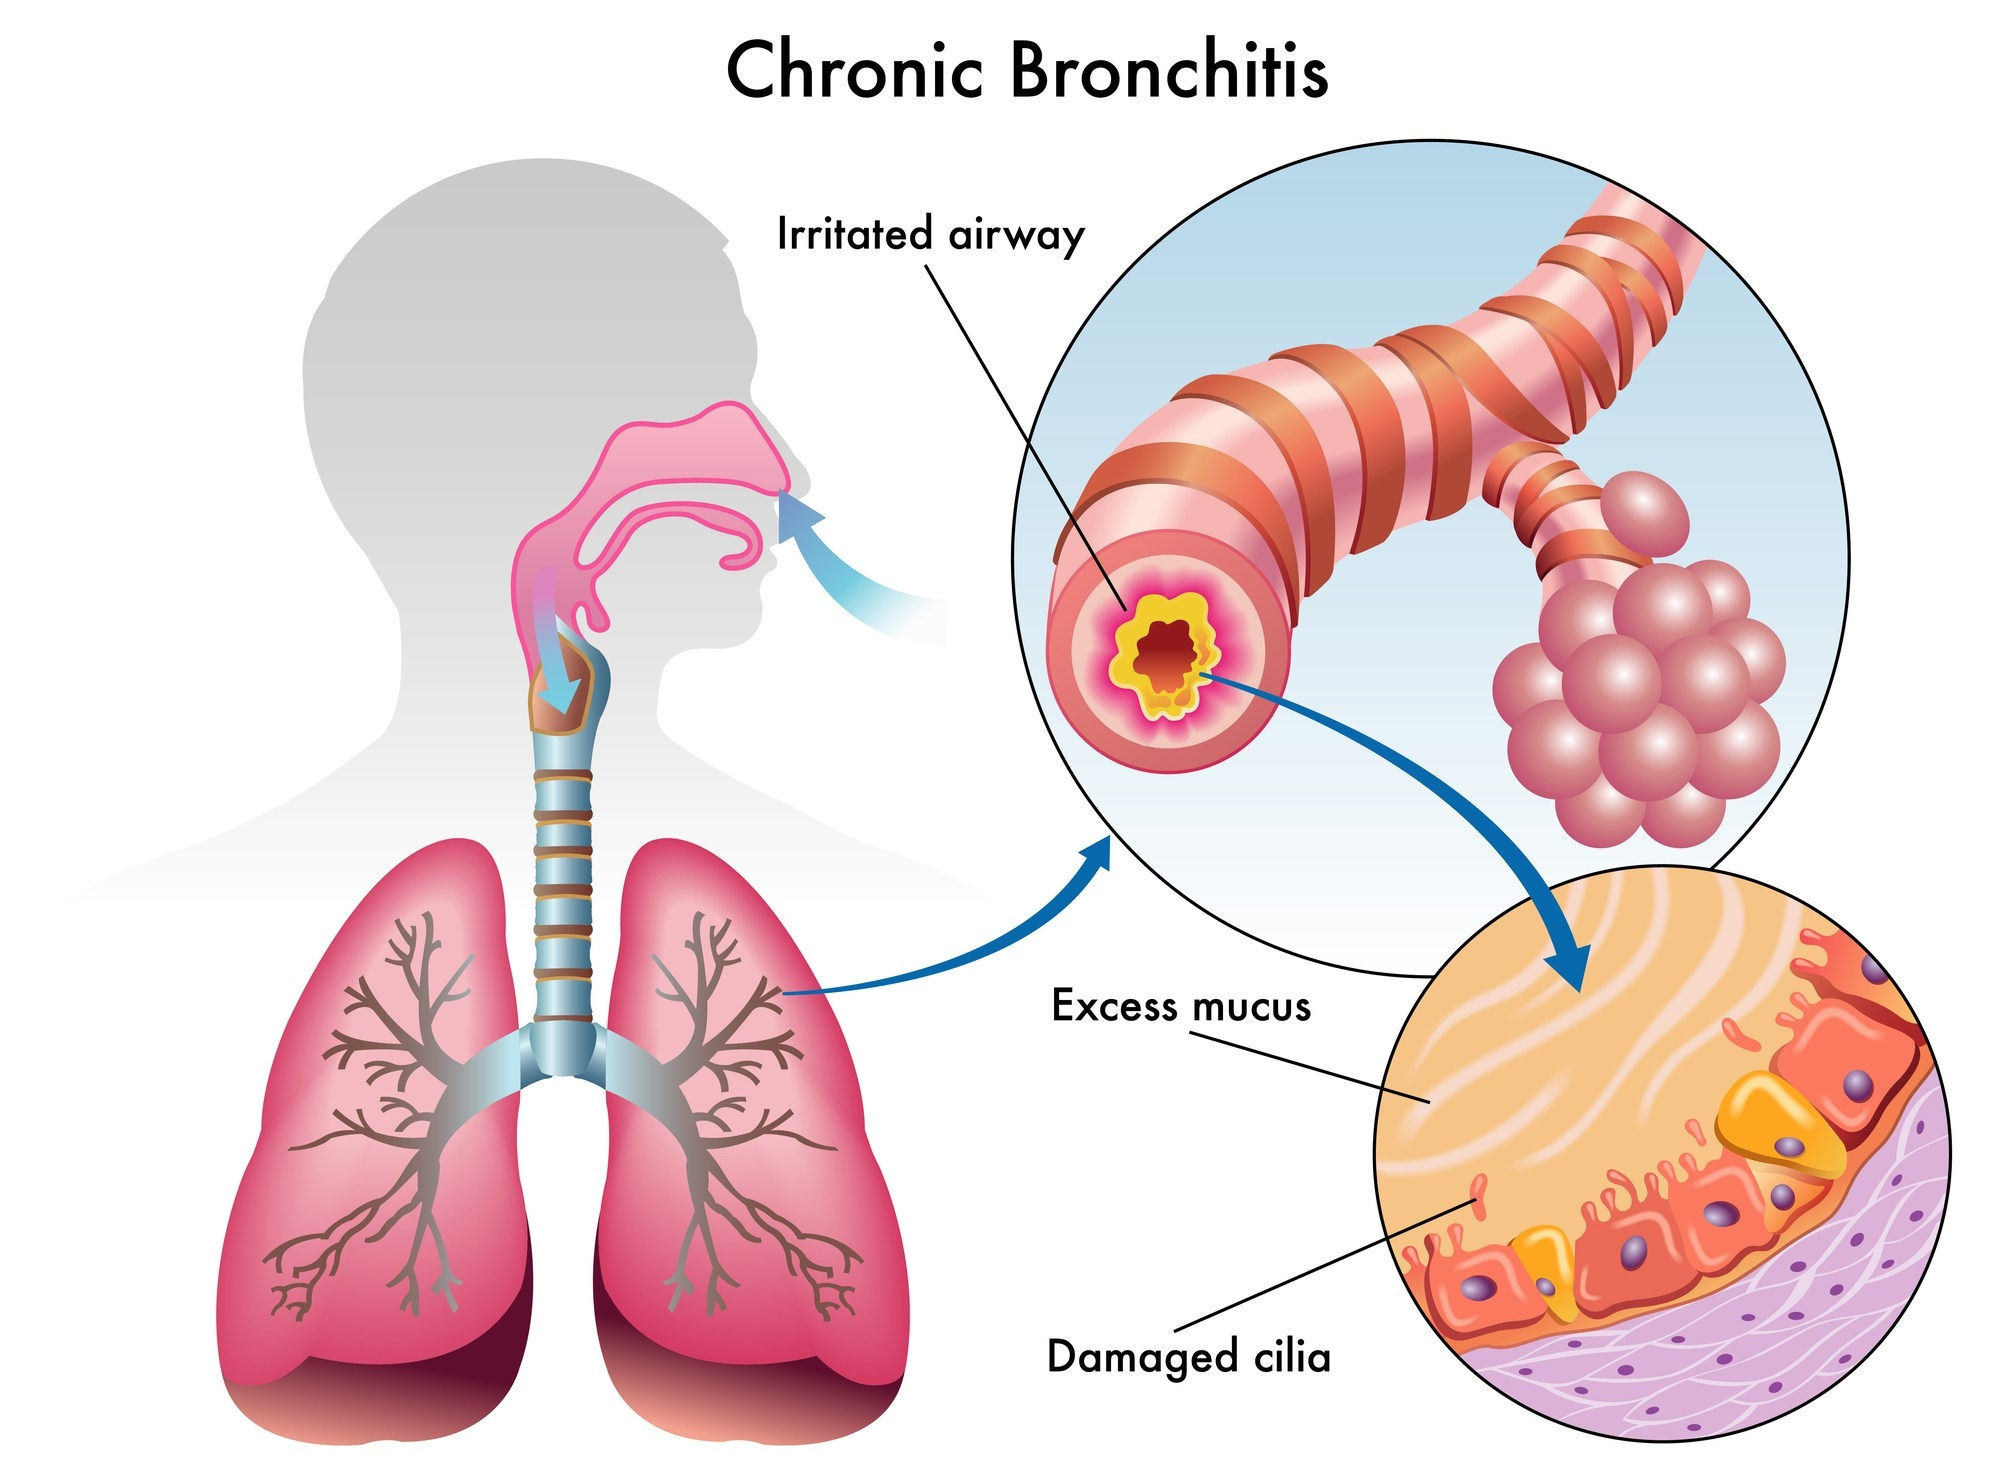 chronic bronchitis diagram